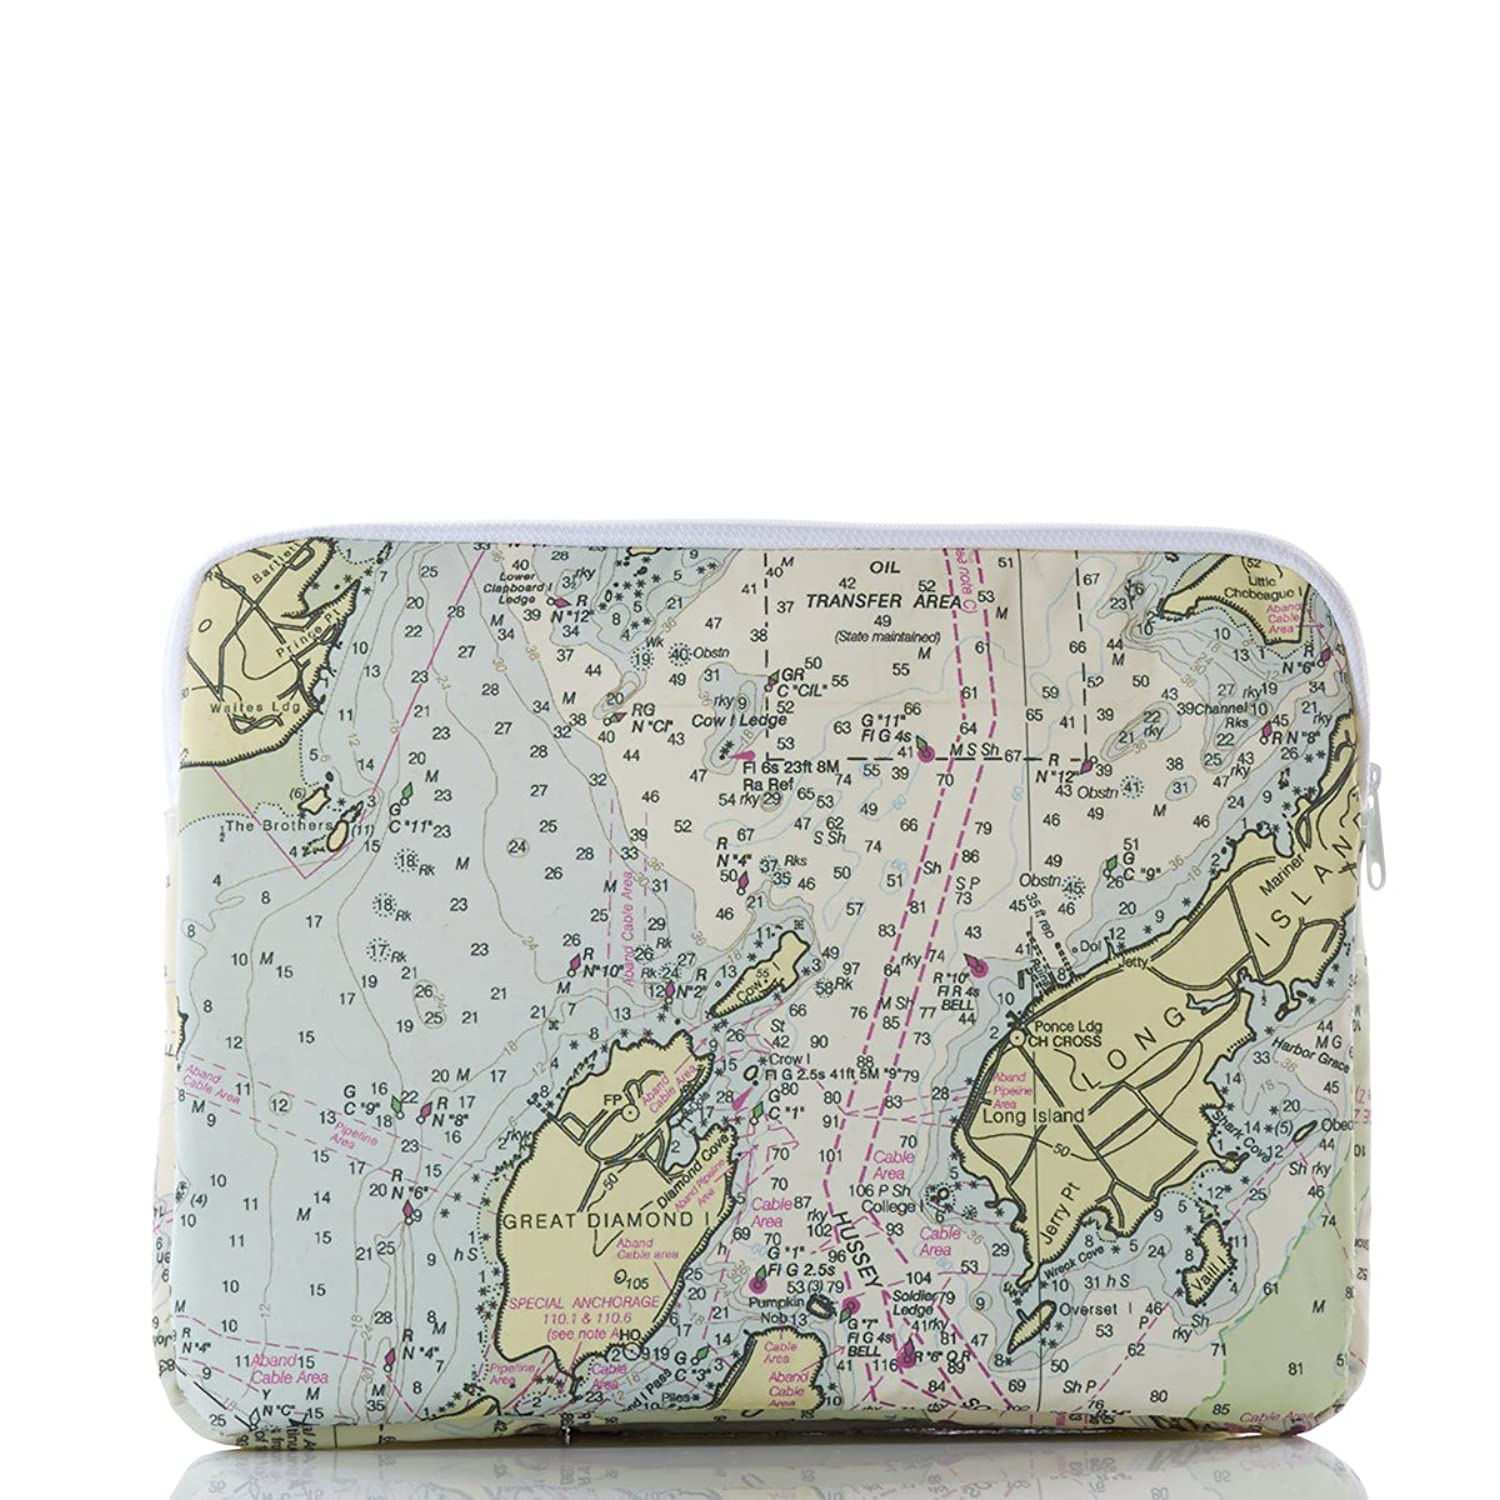 Recycled Sail Cloth Casco Bay Nautical Chart Macbook Case